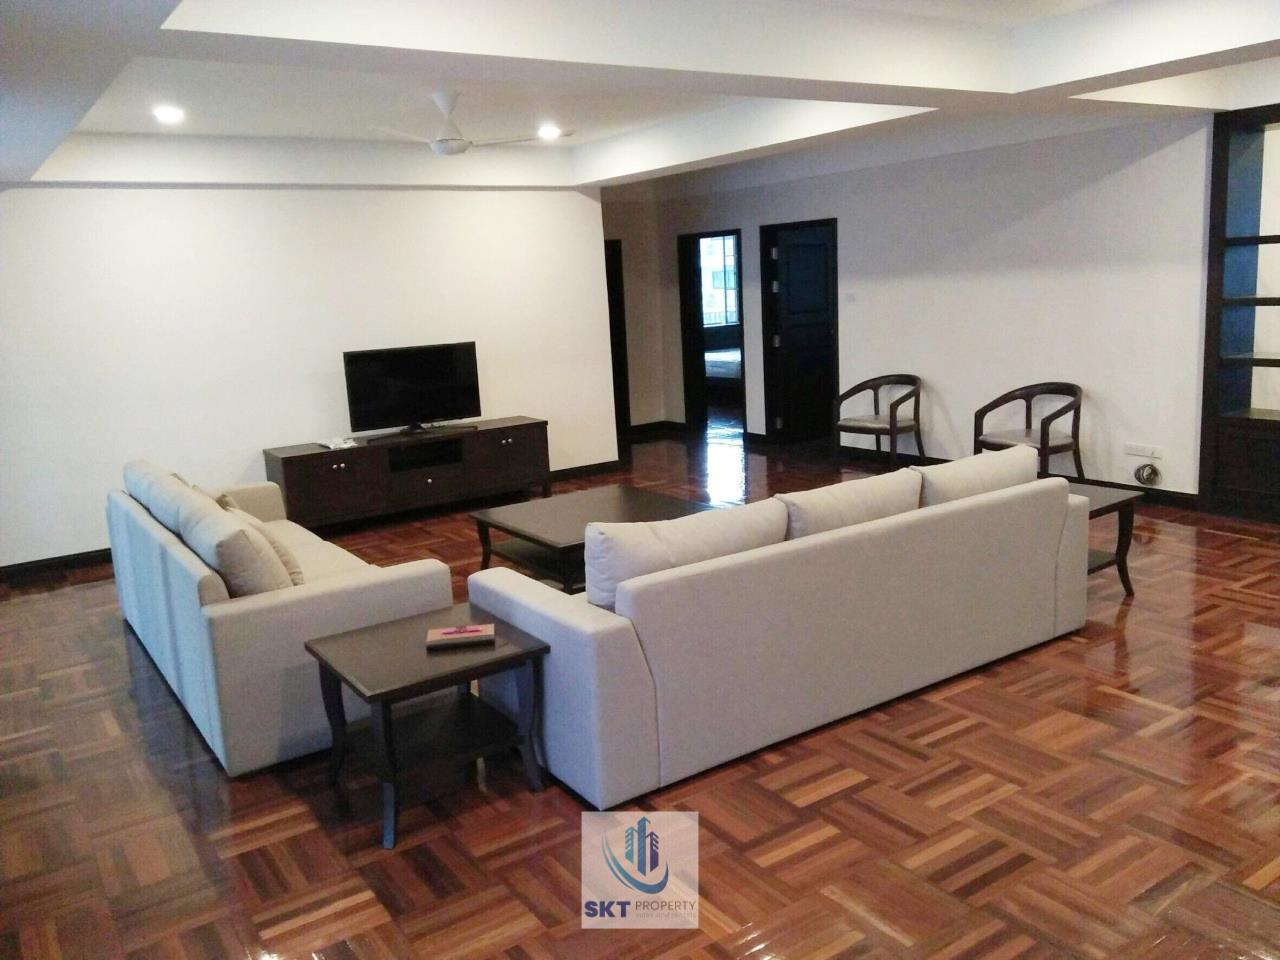 Sukritta Property Agency's For Rent PET FRIENDLY APARTMENT Villa Insaf Near Bts Nana 1